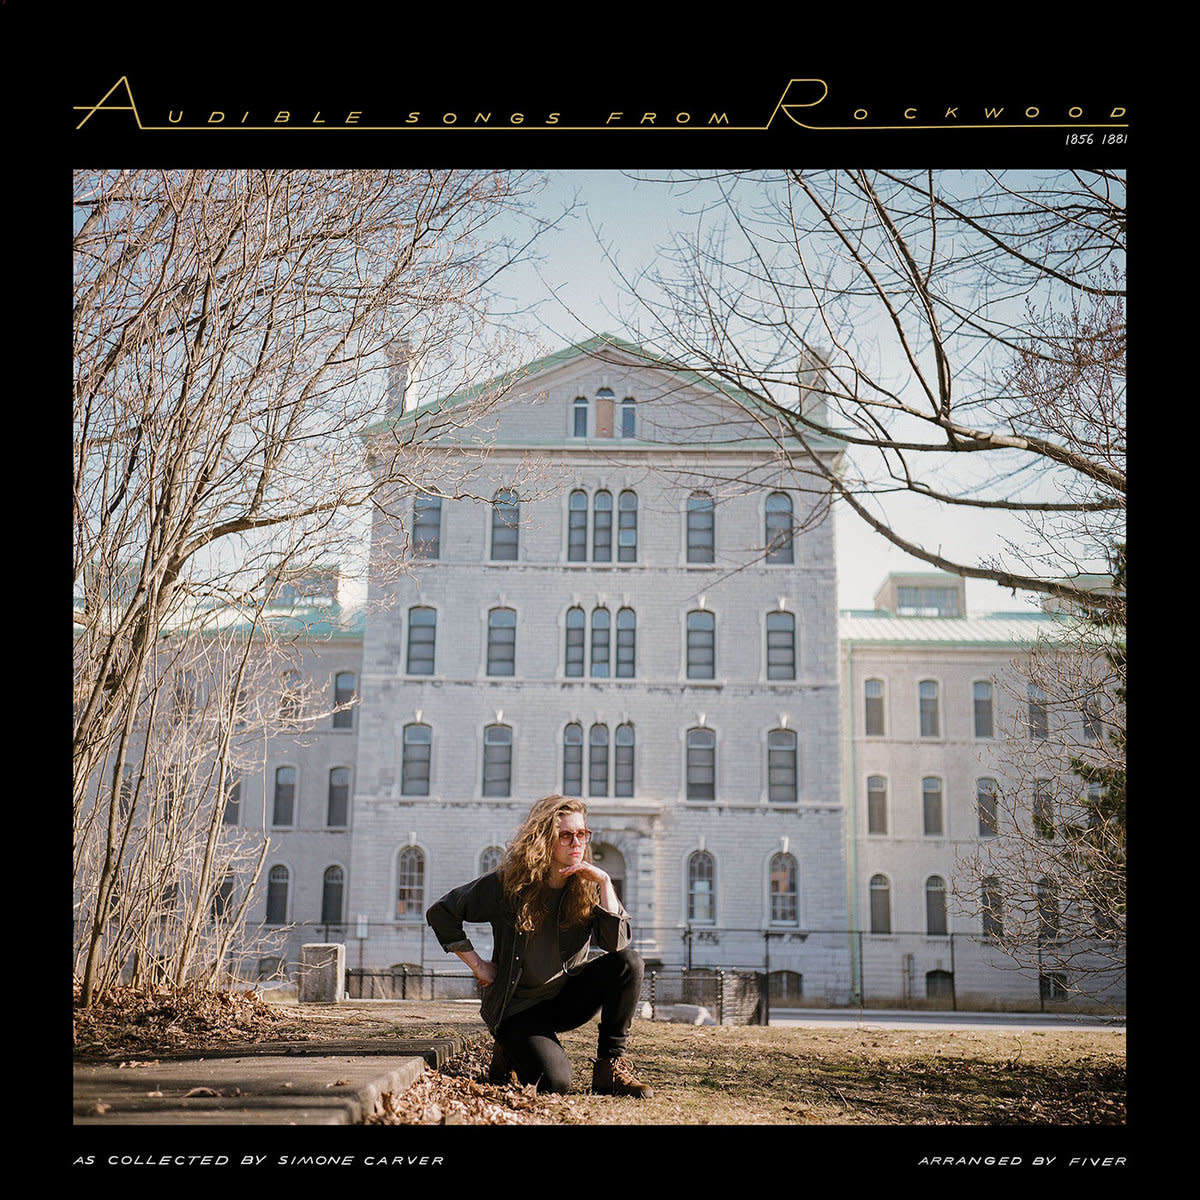 Folk/Country Fiver - Audible Songs From Rockwood